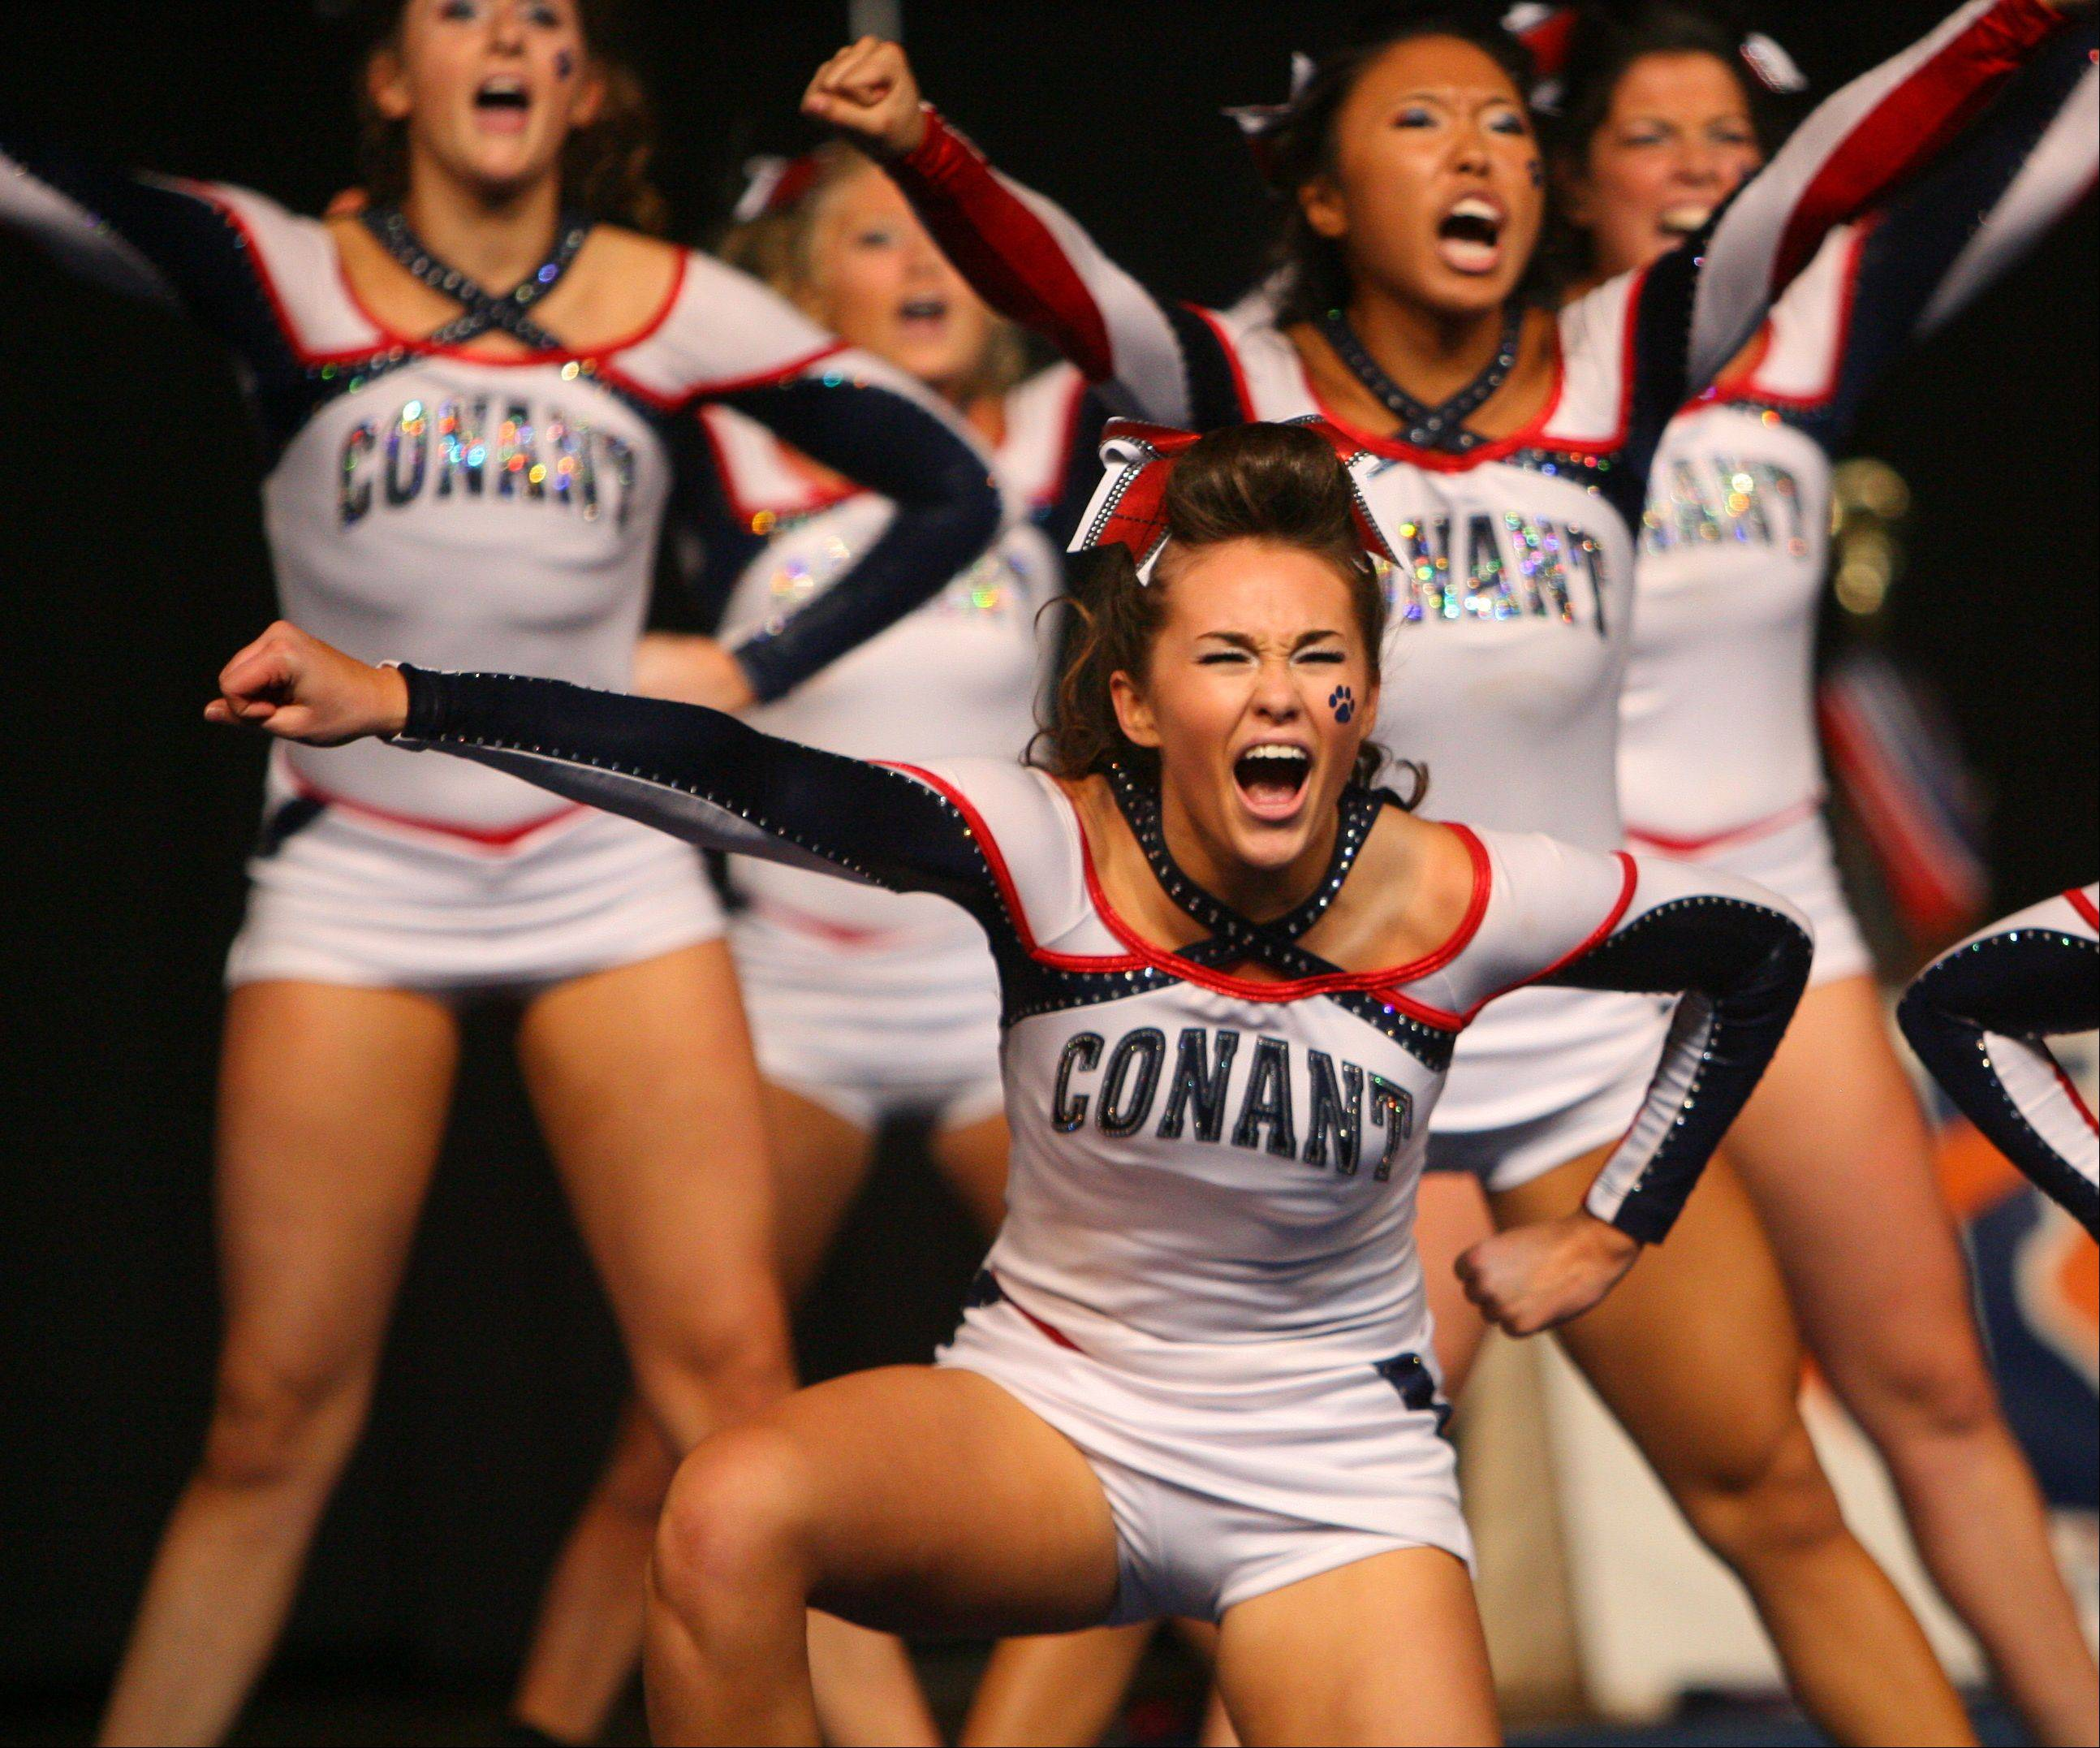 Conant High School waits for the results in the IHSA Competitive Cheerleading finals on Saturday, Feb. 2 at the U.S. Cellular Coliseum in Bloomington.